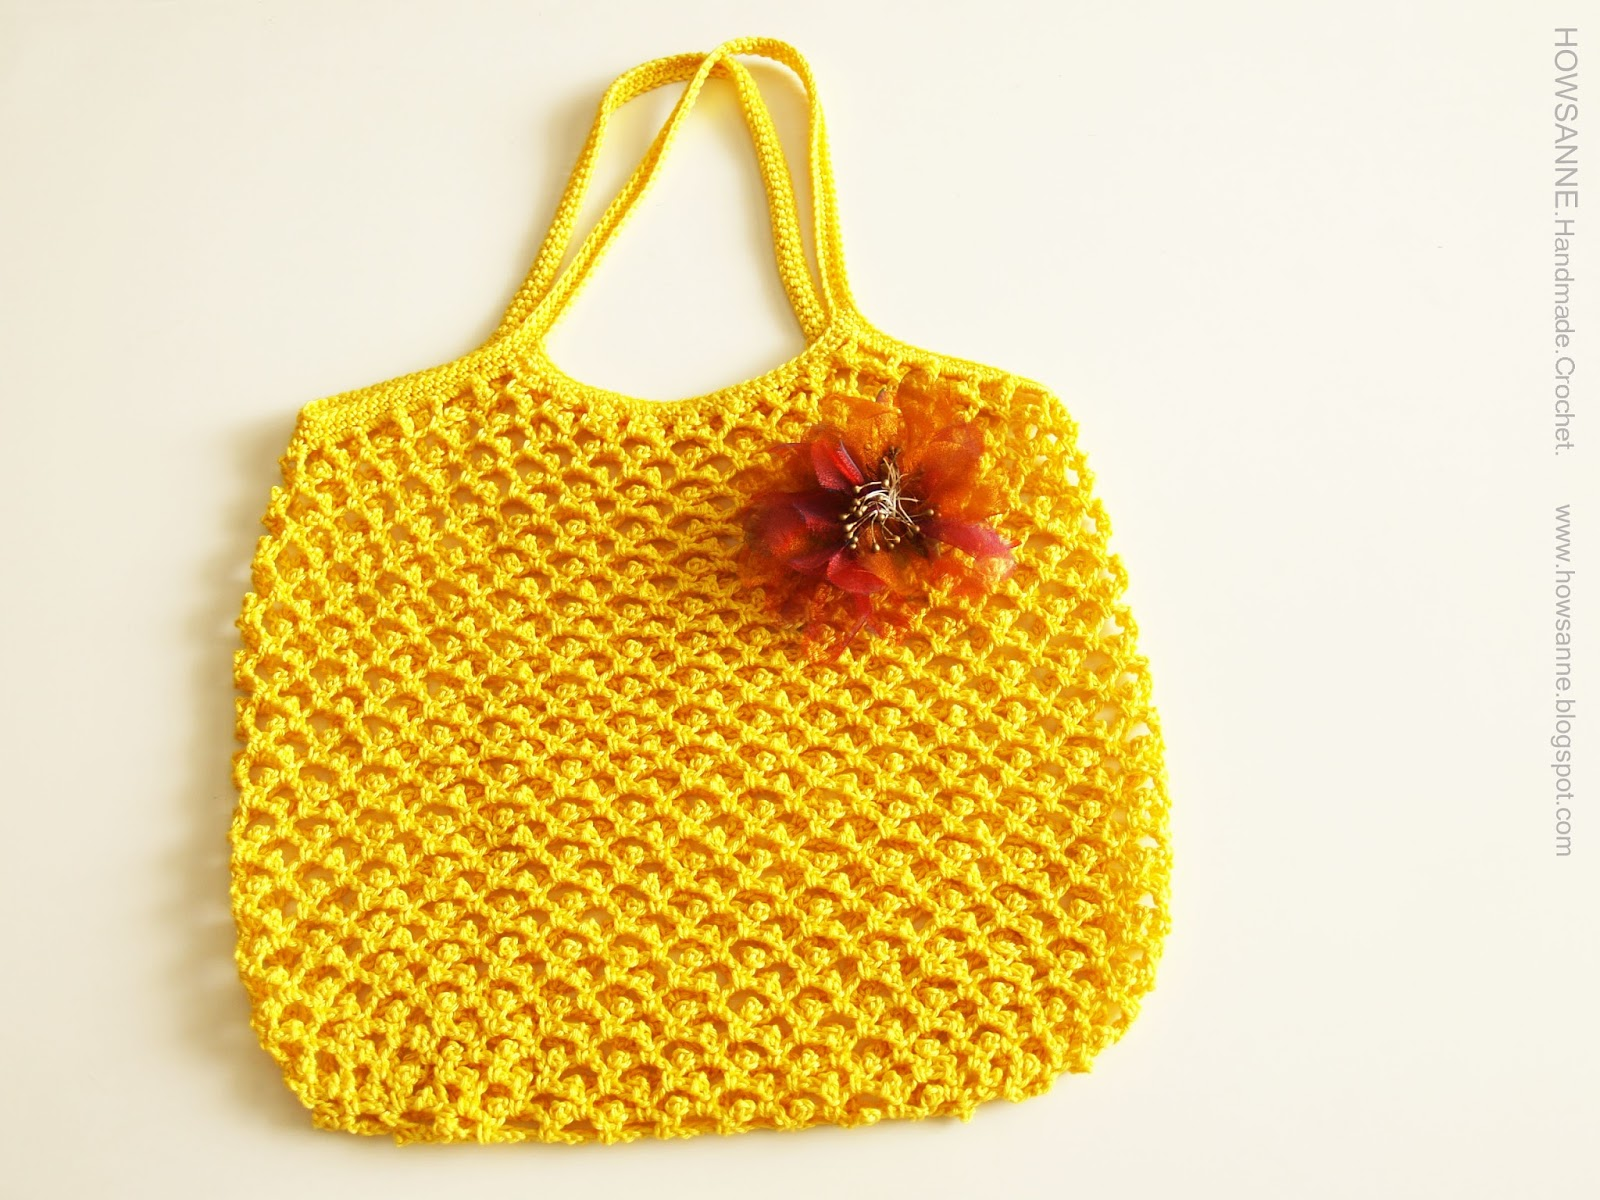 Crochet Net Bag : Howsanne Handmade Crochet : Crochet Shopping Mesh Bag and Tips on ...